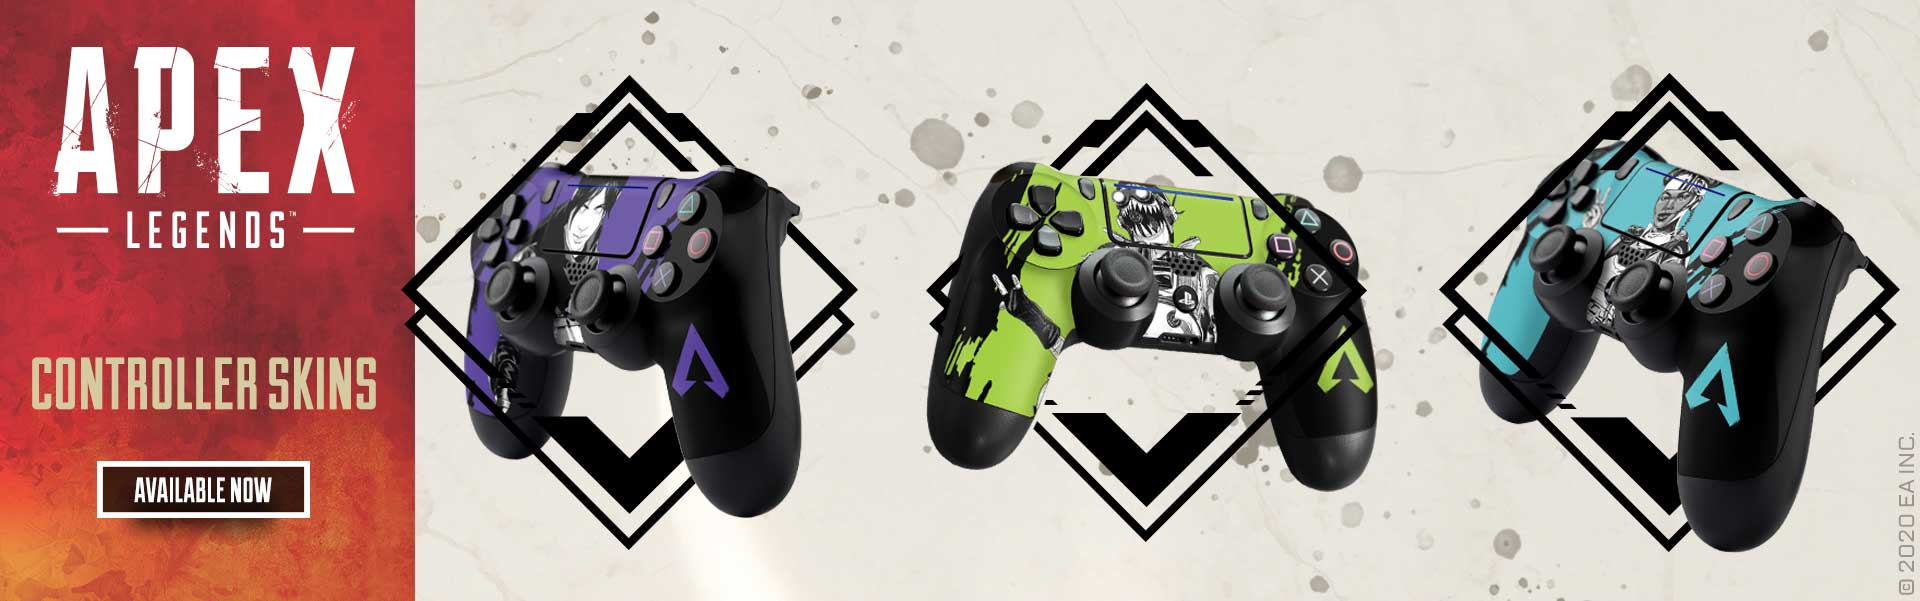 Apex Legends x Controller Gear